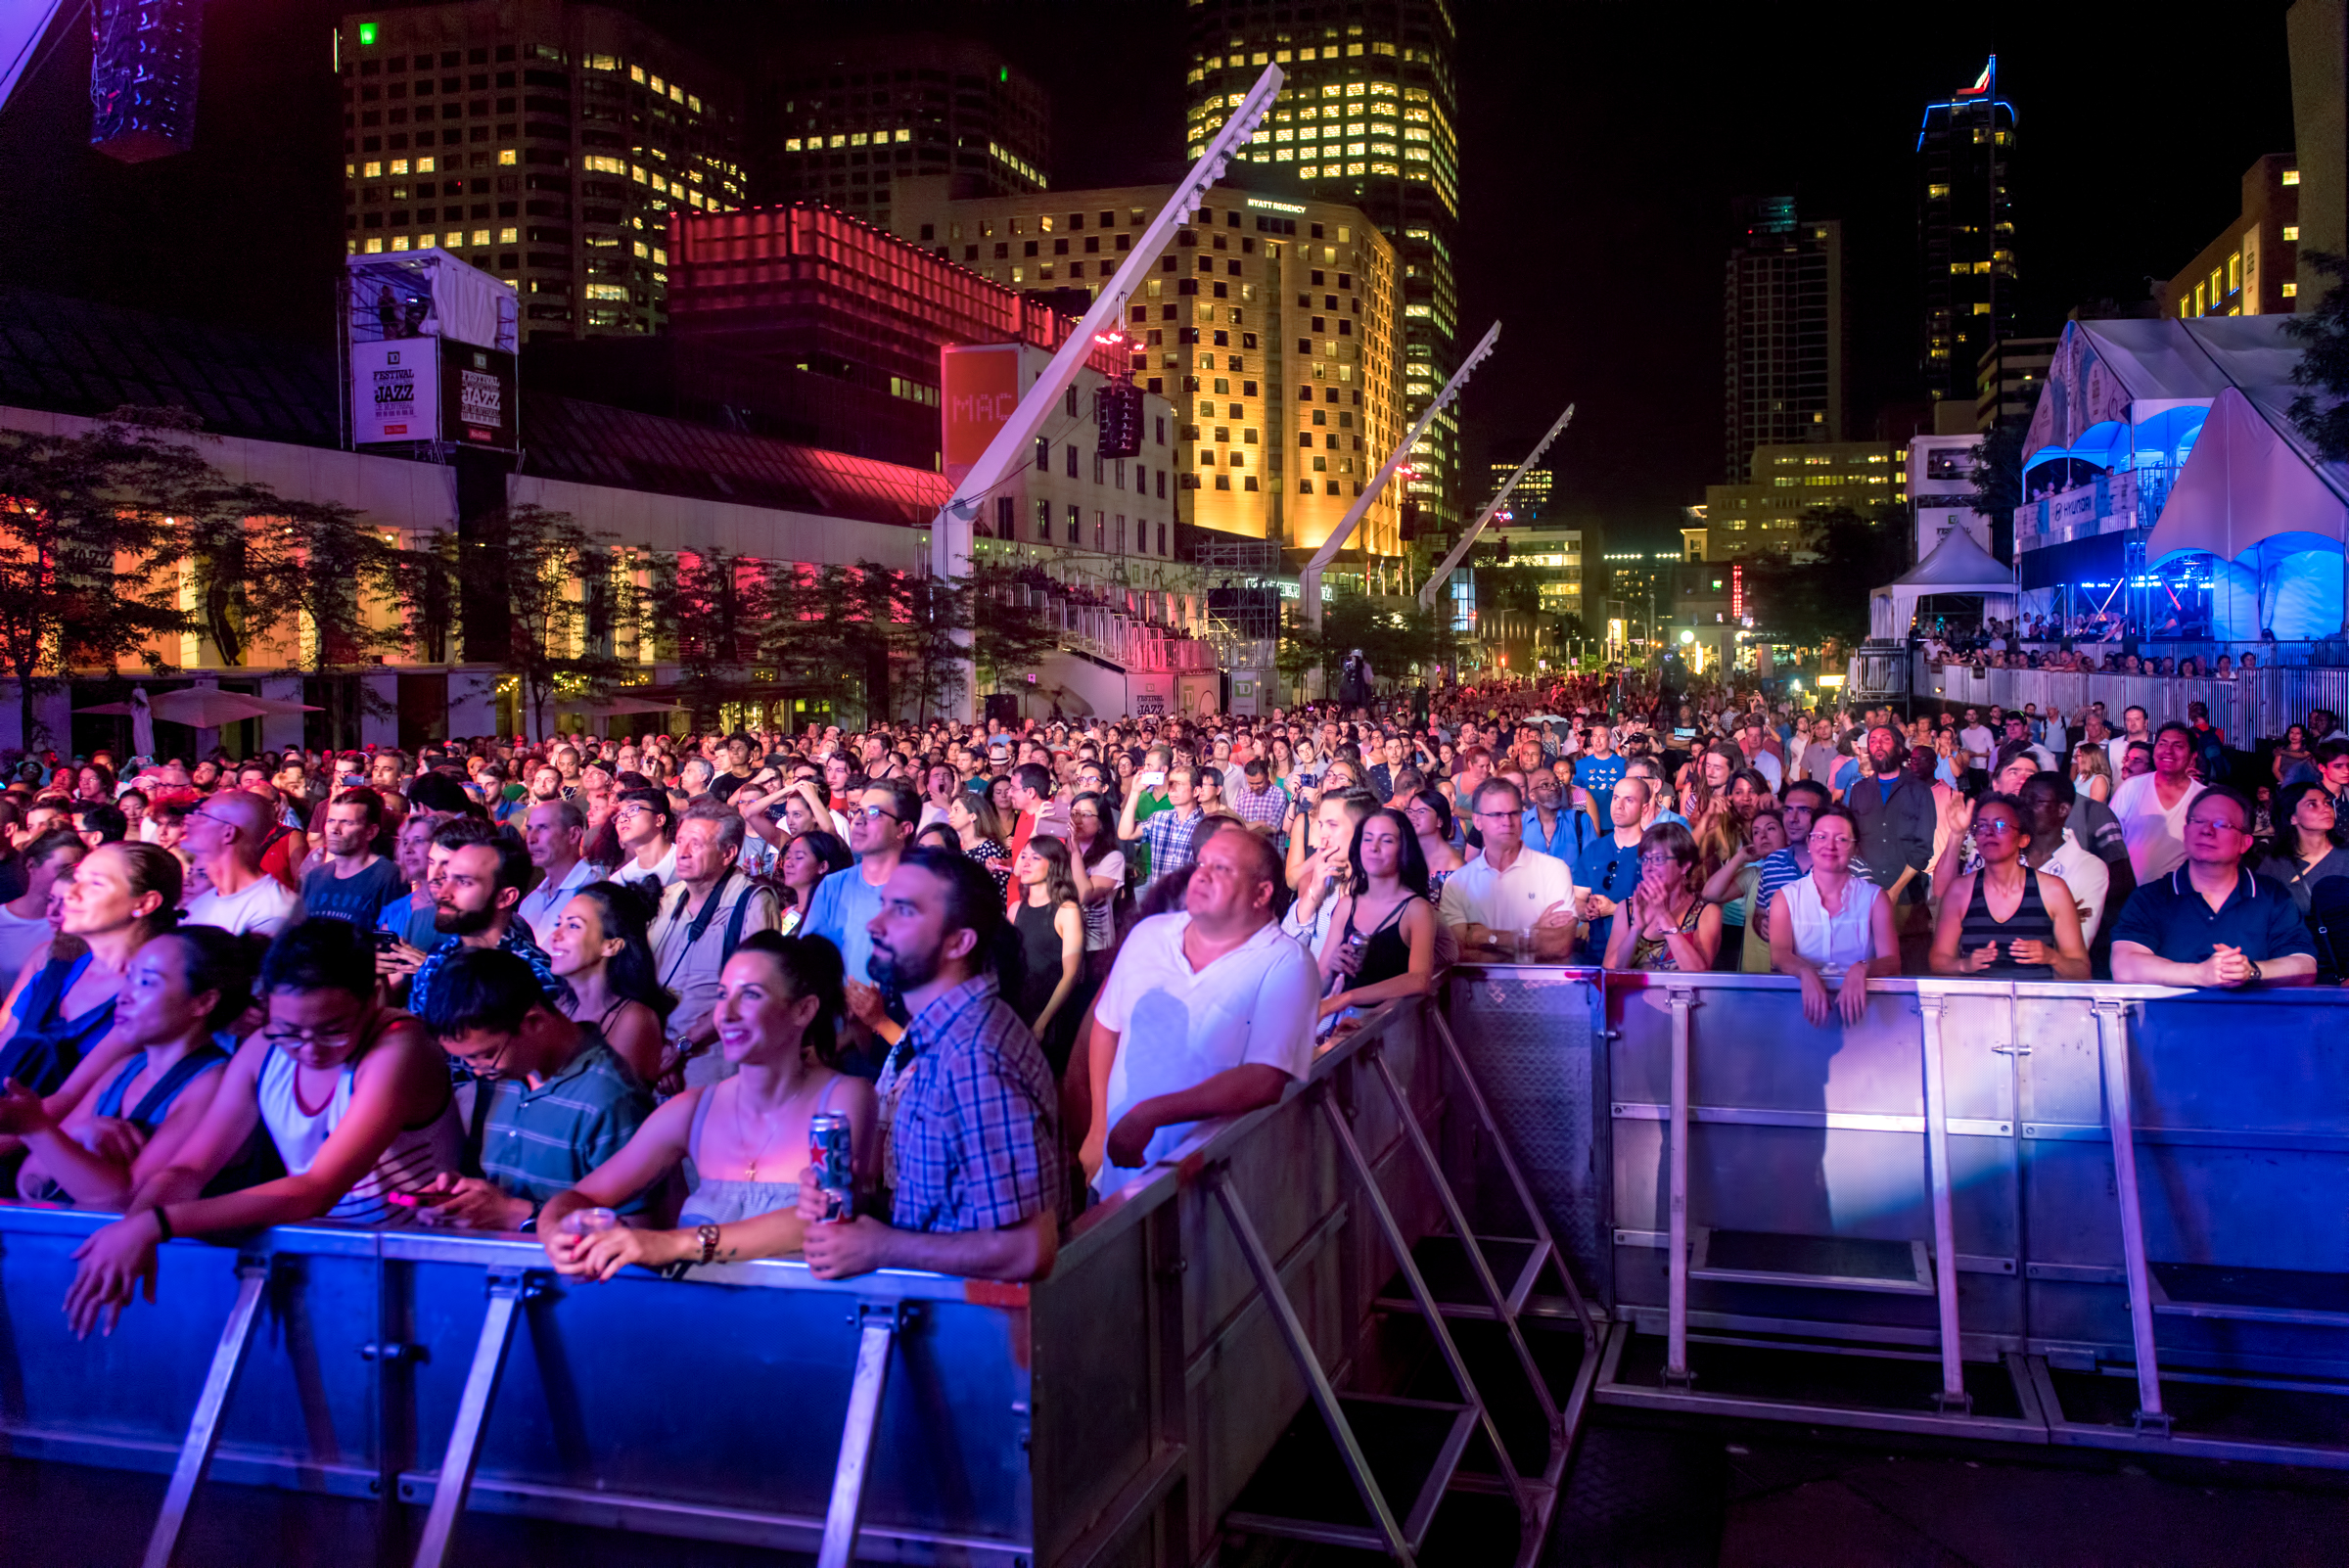 Crowd At The Montreal International Jazz Festival 2018